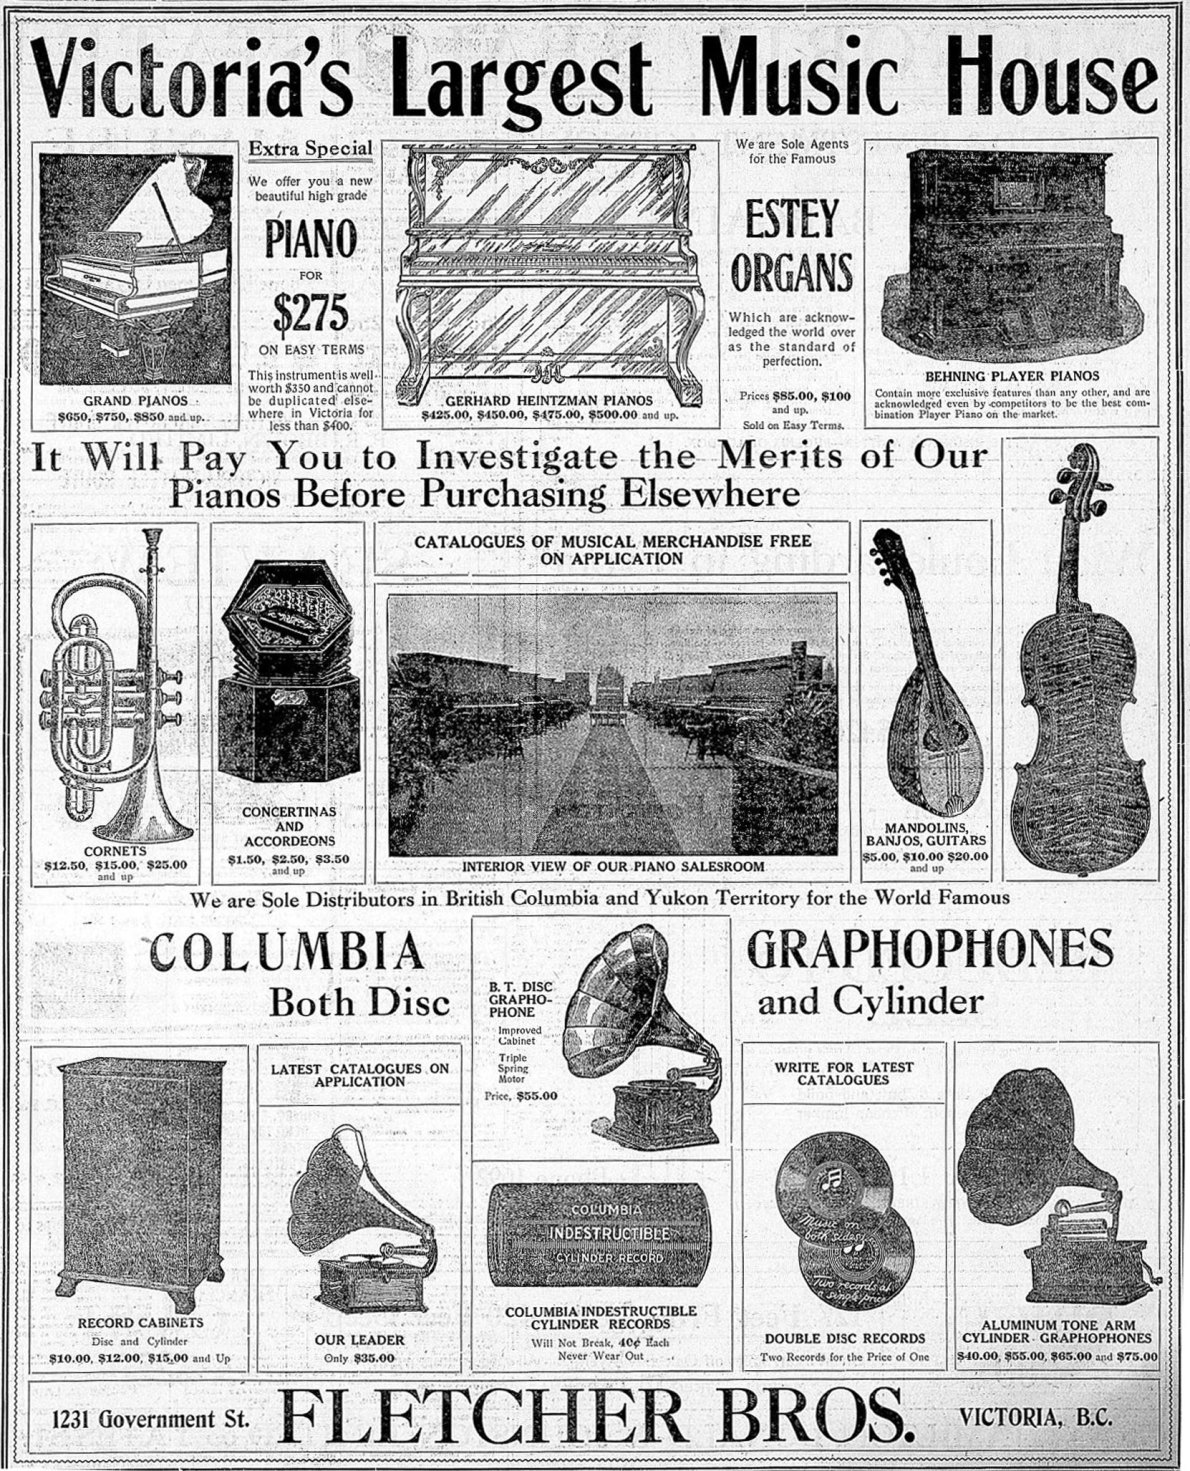 1908 newspaper advertisement for Fletcher Brothers, 1231 Government Street, showing the interior of the store and illustrations of the record and phonograph technology of the period. (Victoria Online Sightseeing Tours collection)